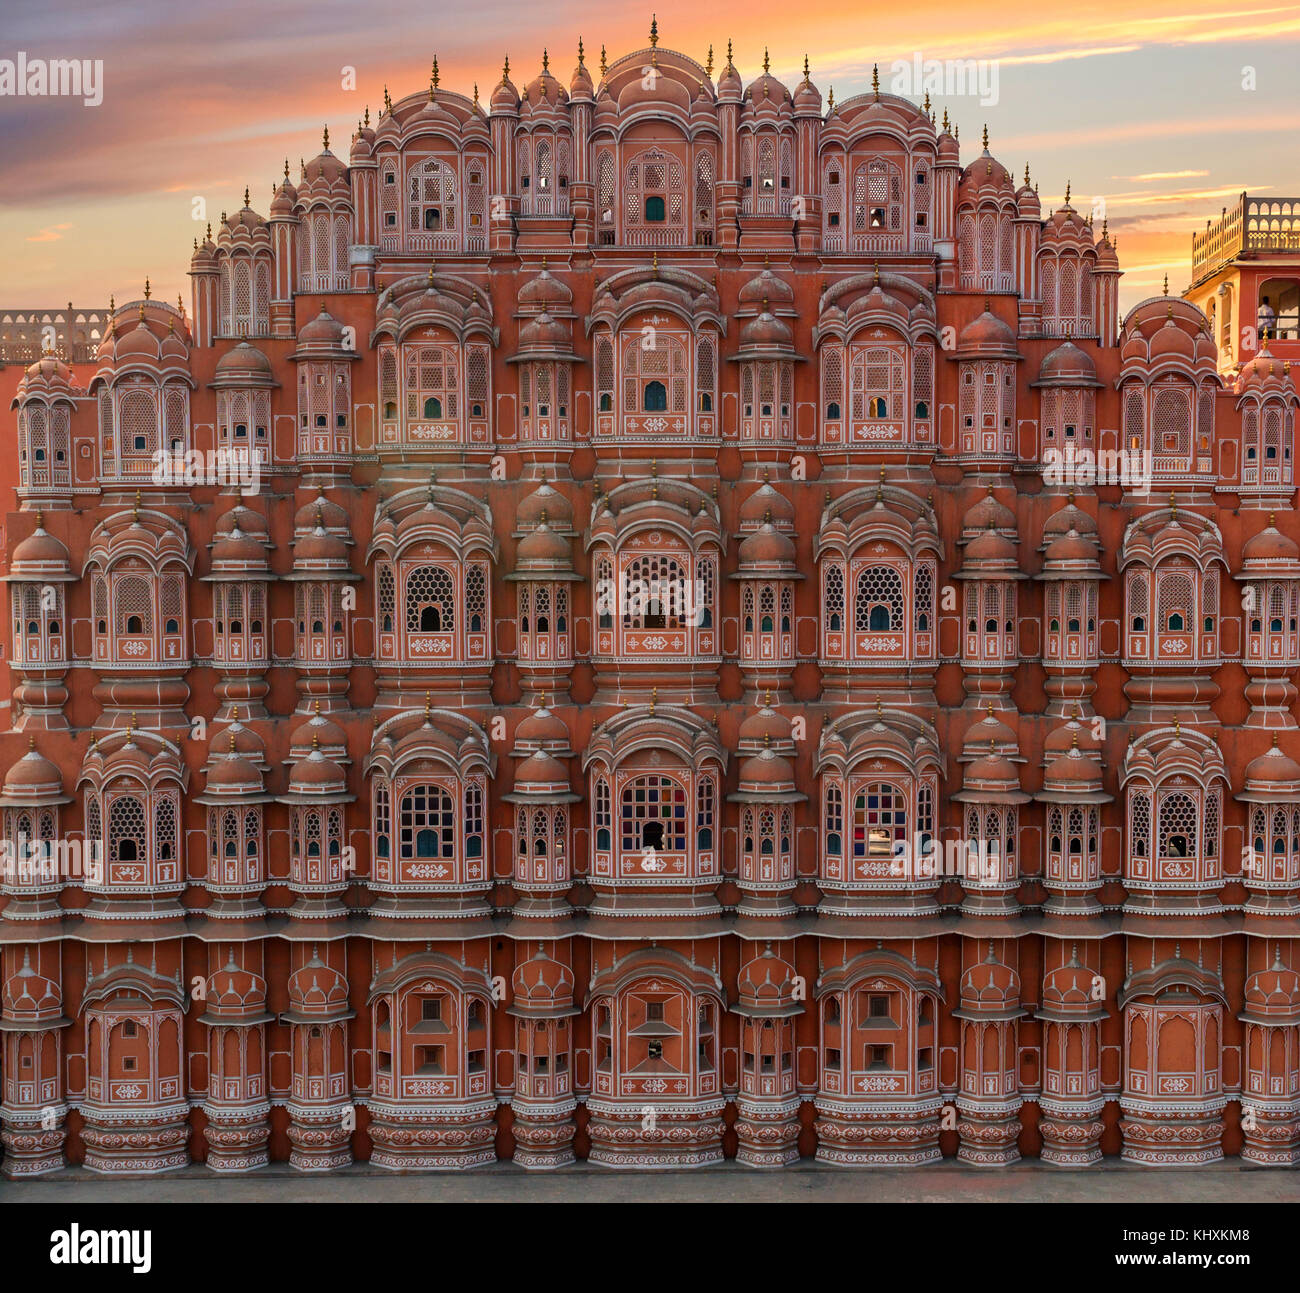 Scenic sunset view to Hawa Mahal in Jaipur, India - Stock Image